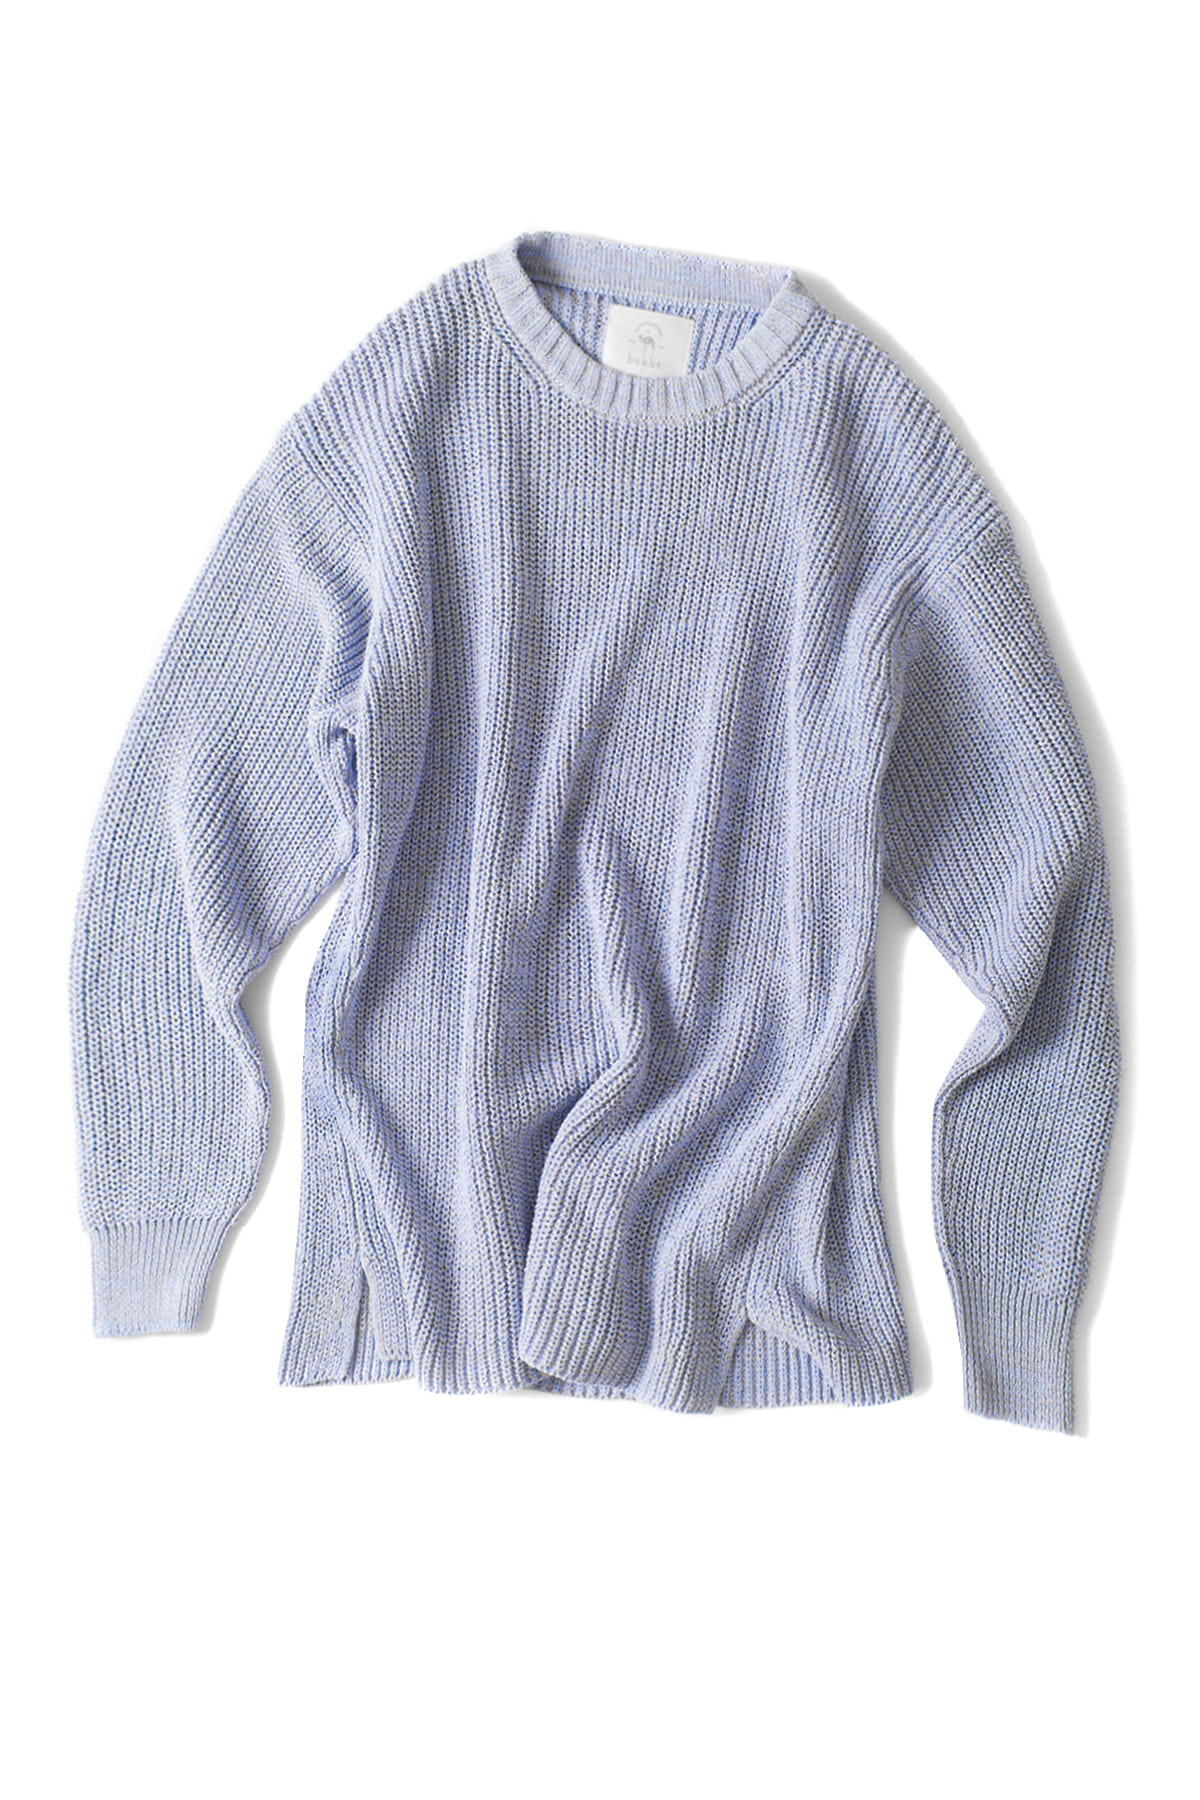 bukht : Rib Knit (Blue Grey)